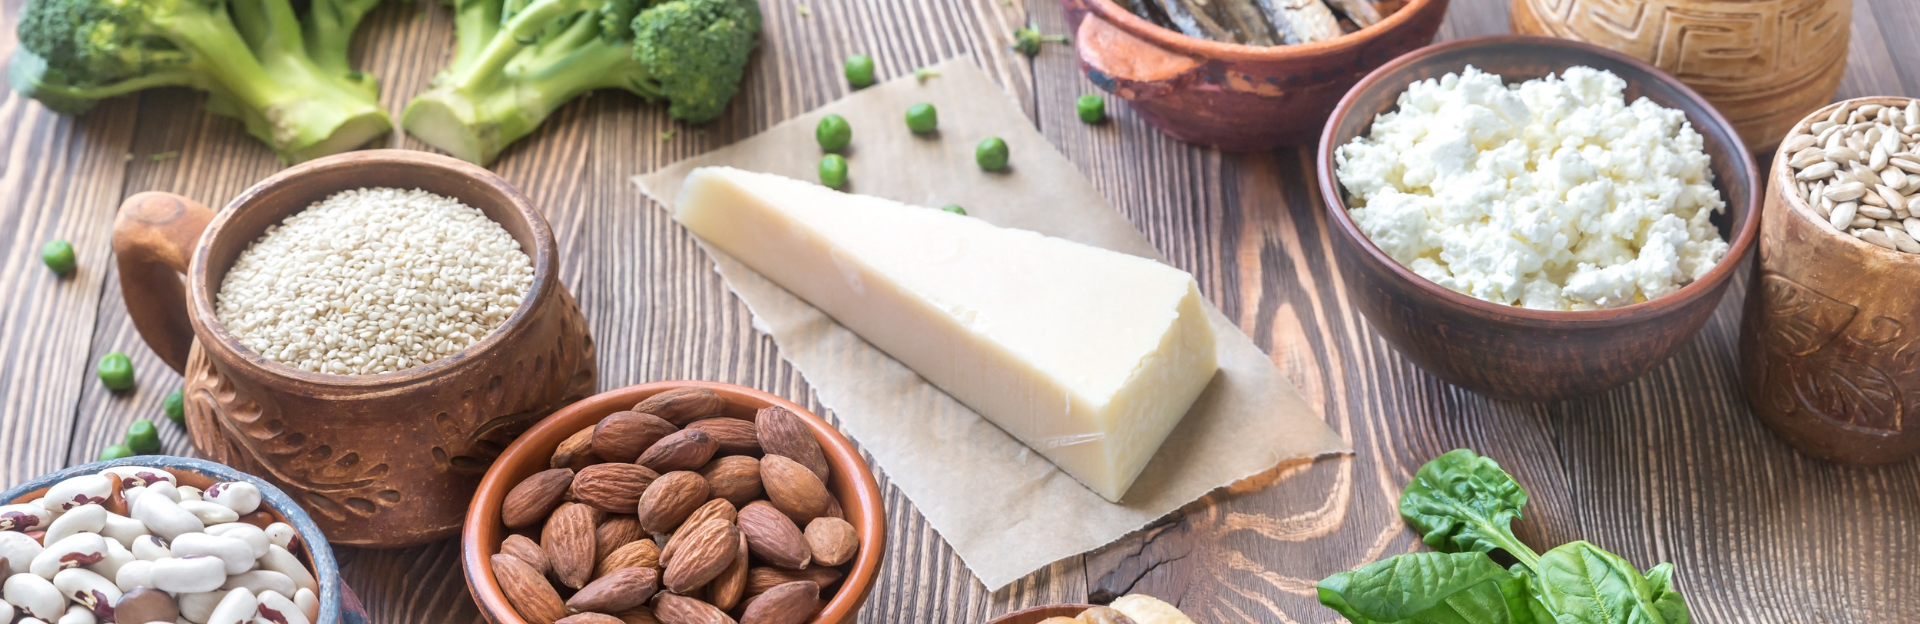 10 of the best calcium foods to add to your diet